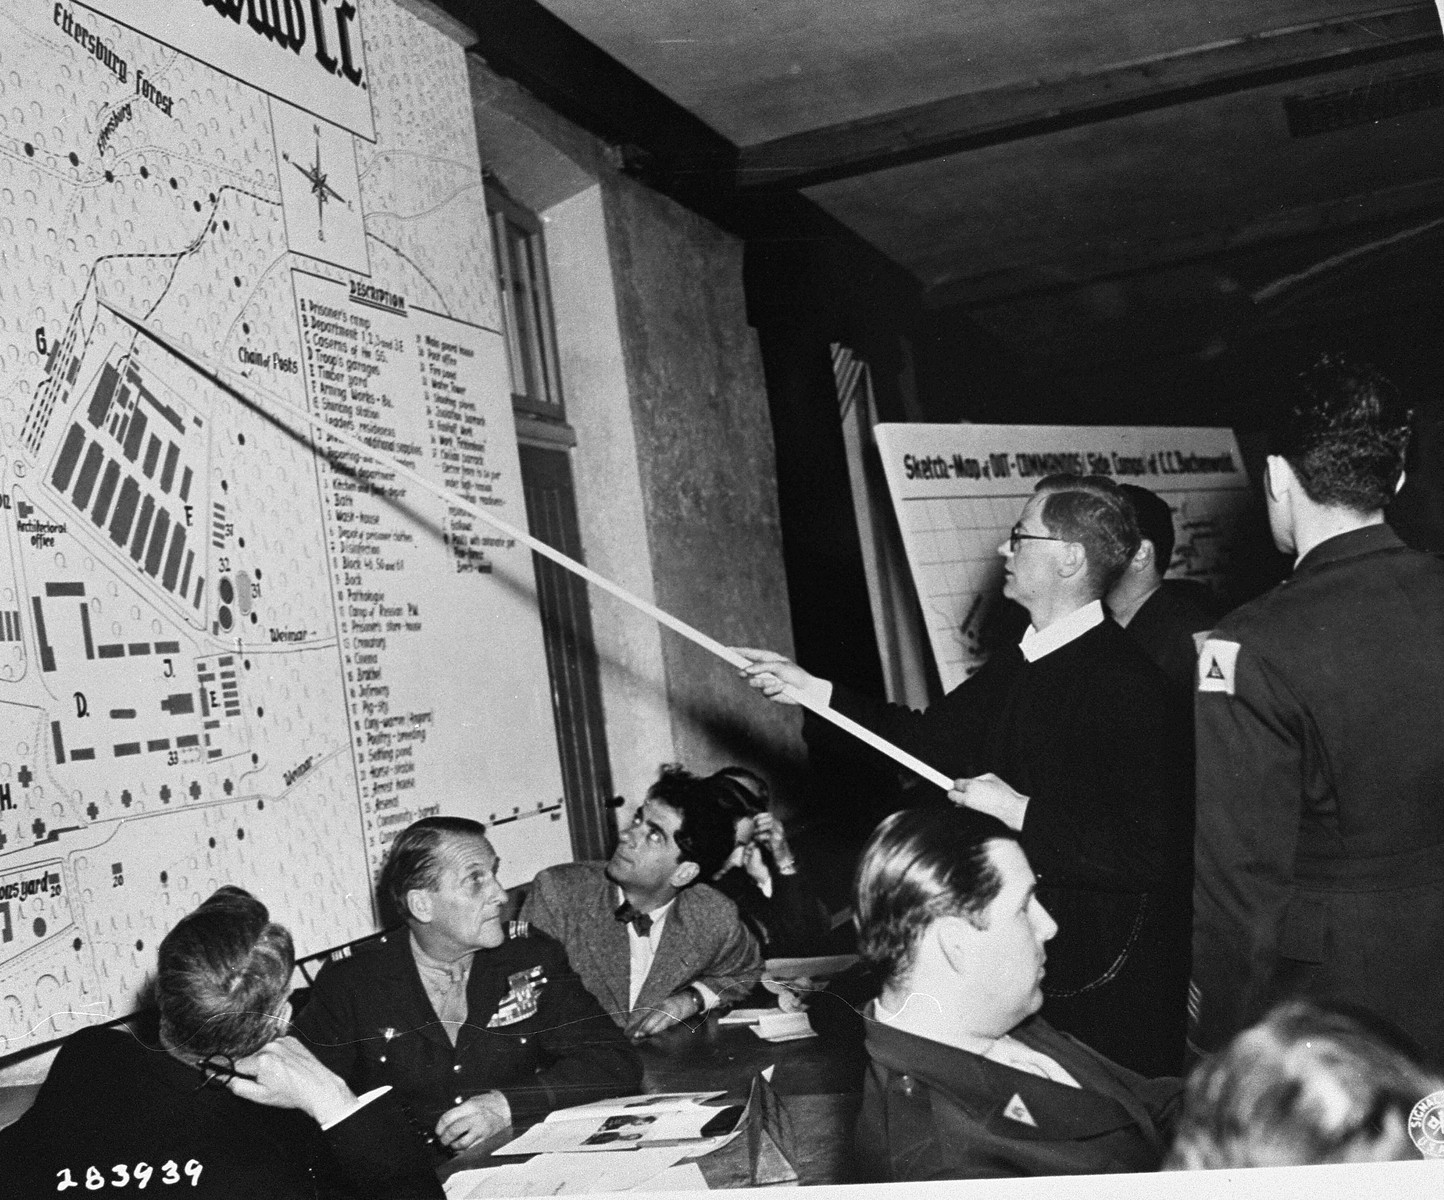 Father Jean Brinioul, a witness for the prosecution, indicates on a map where he was forced to work, during the trial of former camp personnel and prisoners from Buchenwald.    Looking on are George Converse of the Western Defense Command; Sol Surowitz, an American prosecutor; and Fred Stecker, an interpreter.